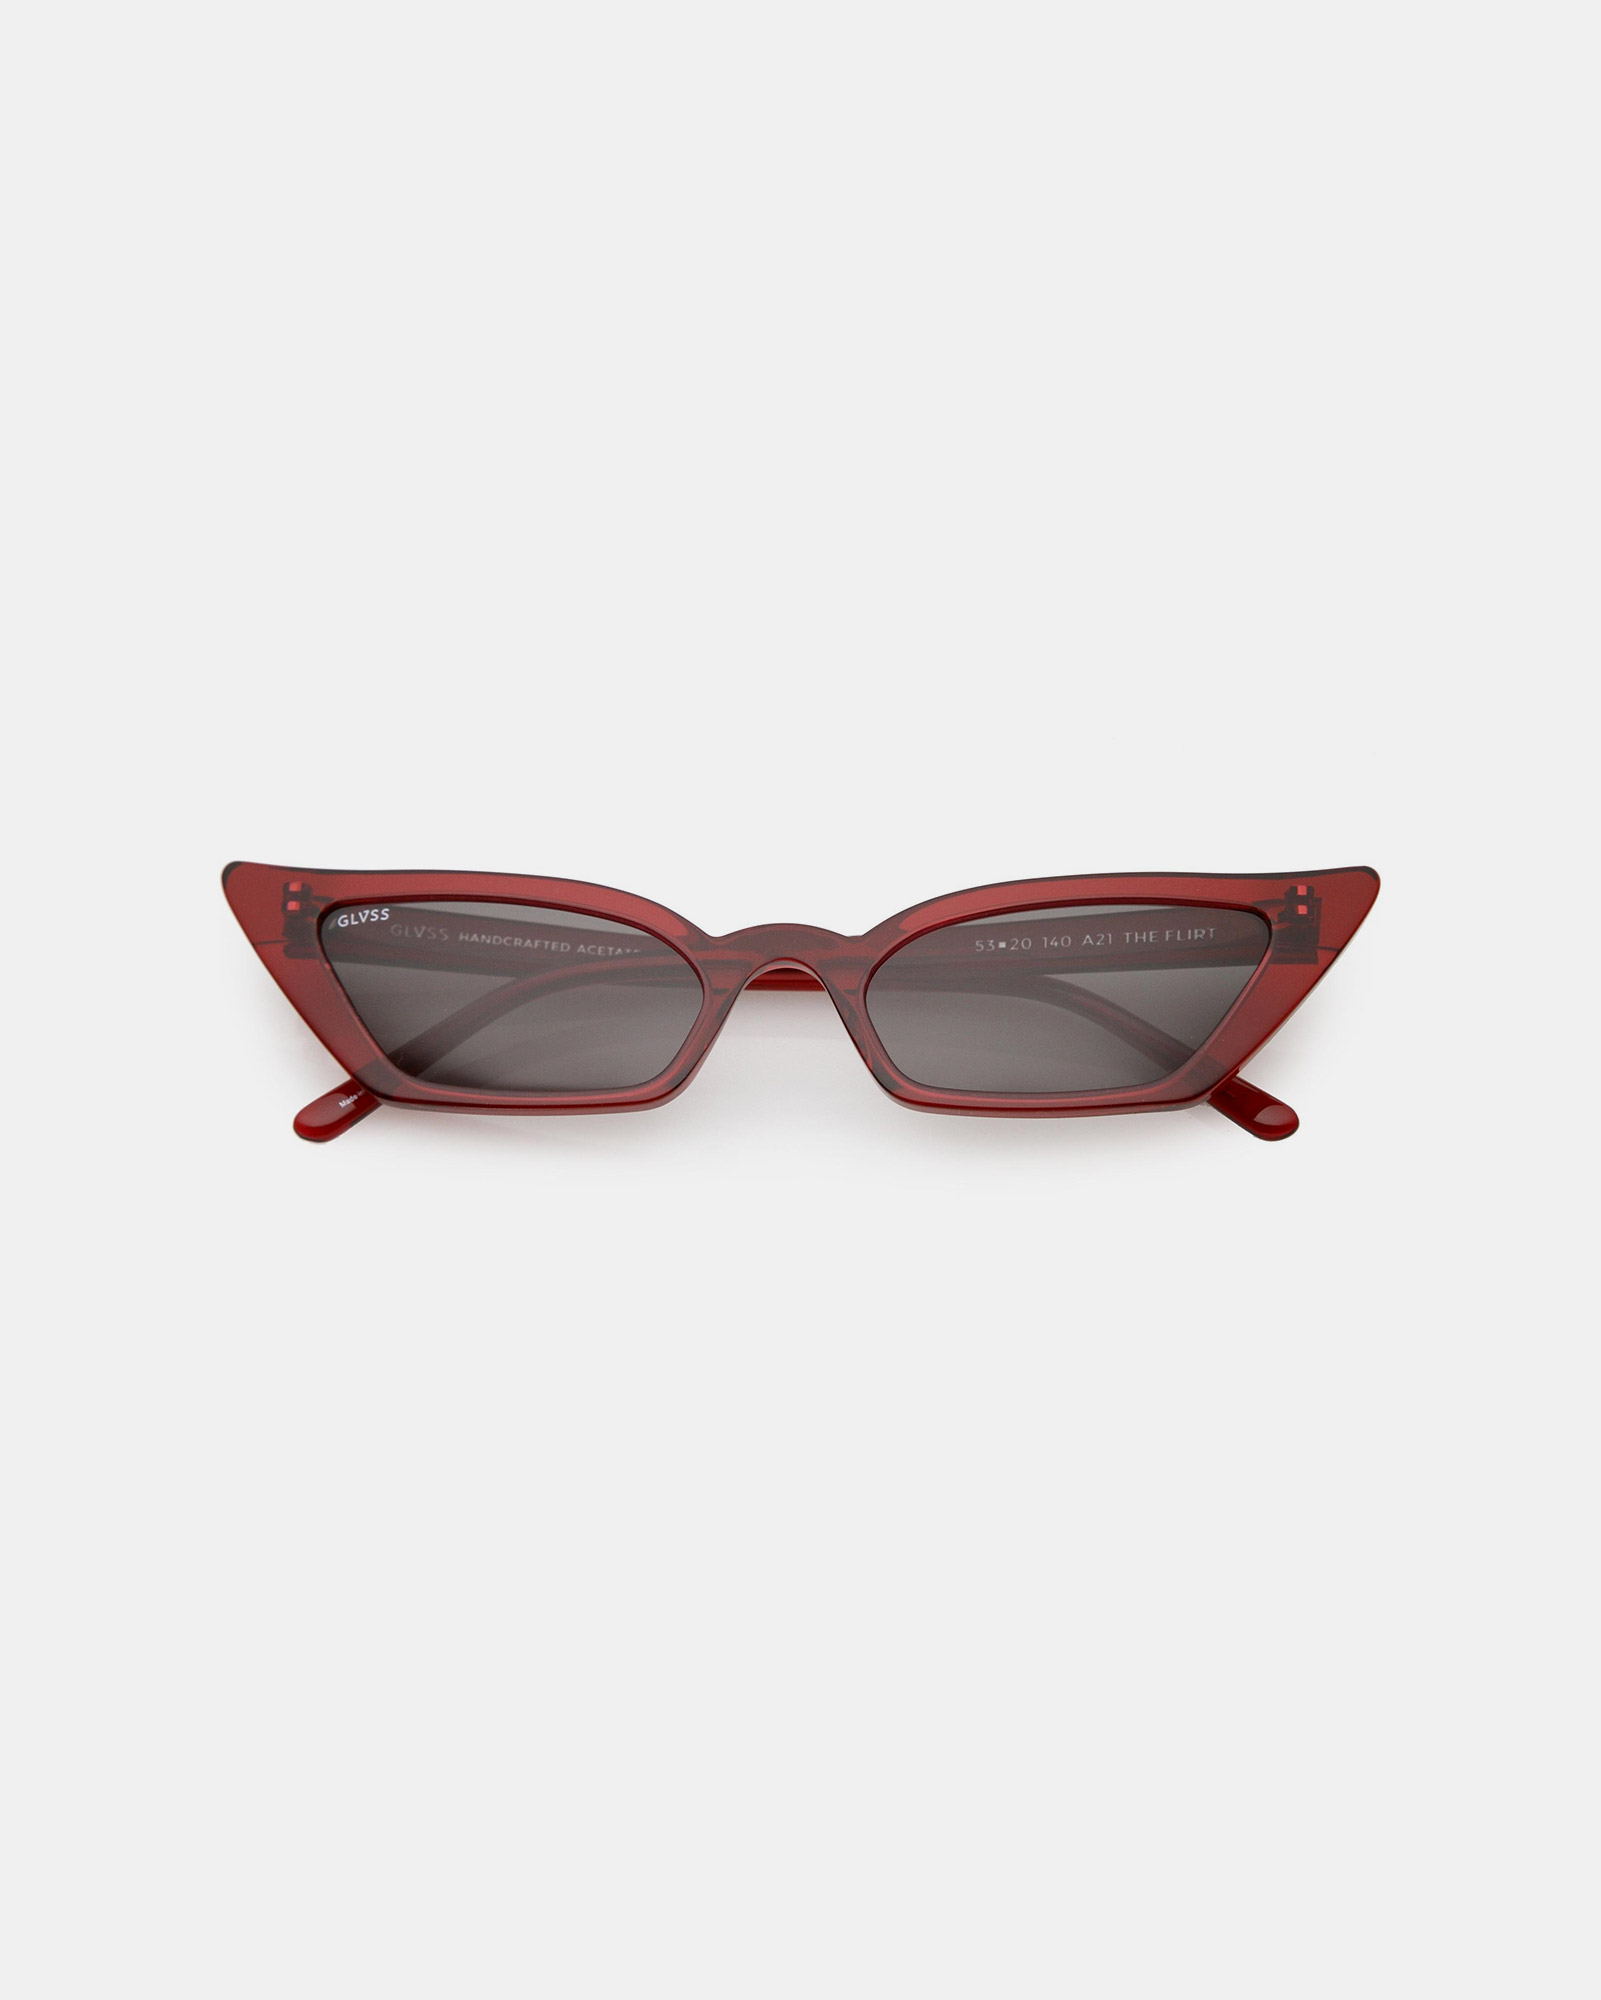 GLVSS The Flirt Clear Red Sunglasses